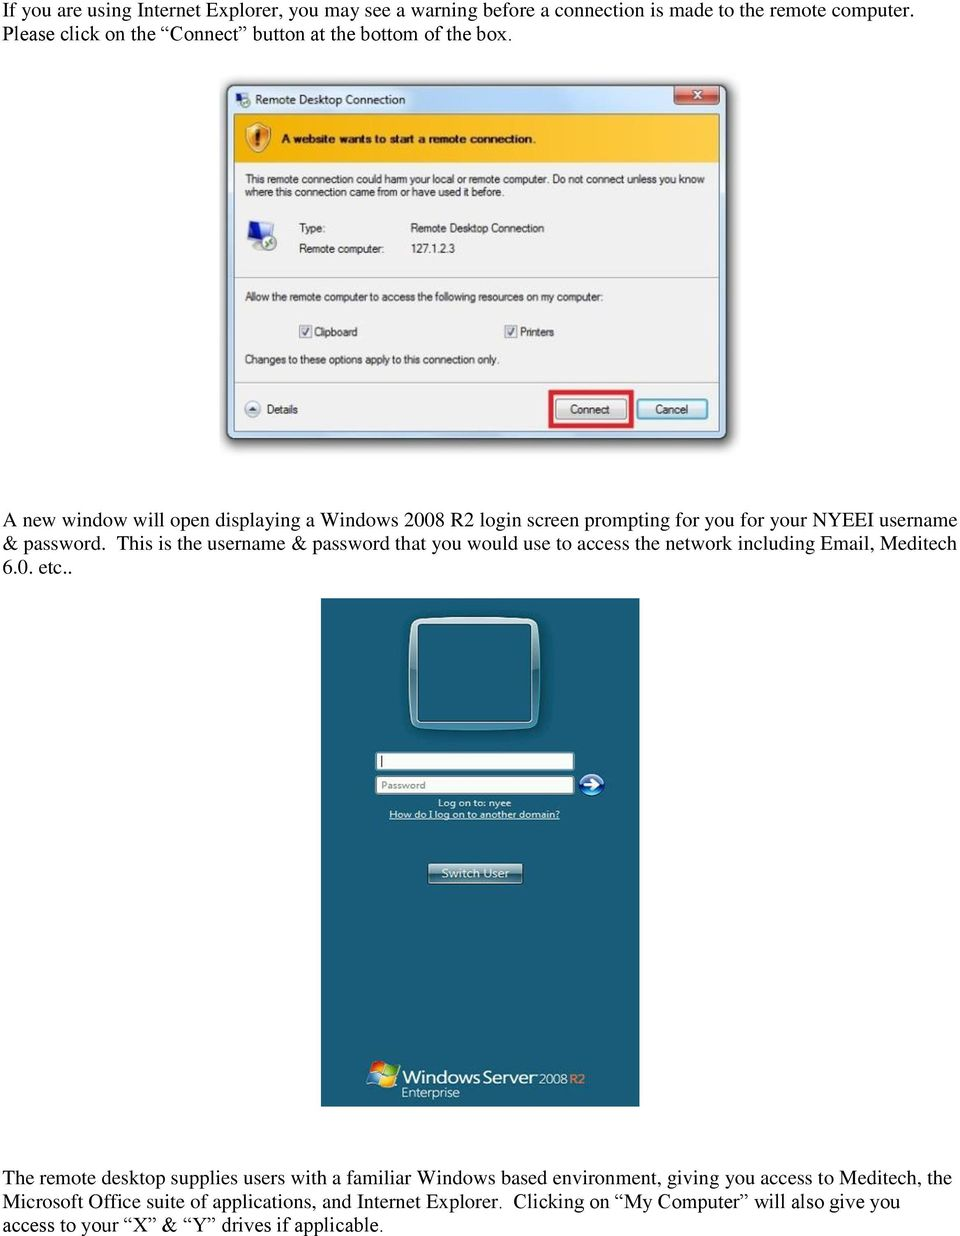 A new window will open displaying a Windows 2008 R2 login screen prompting for you for your NYEEI username & password.